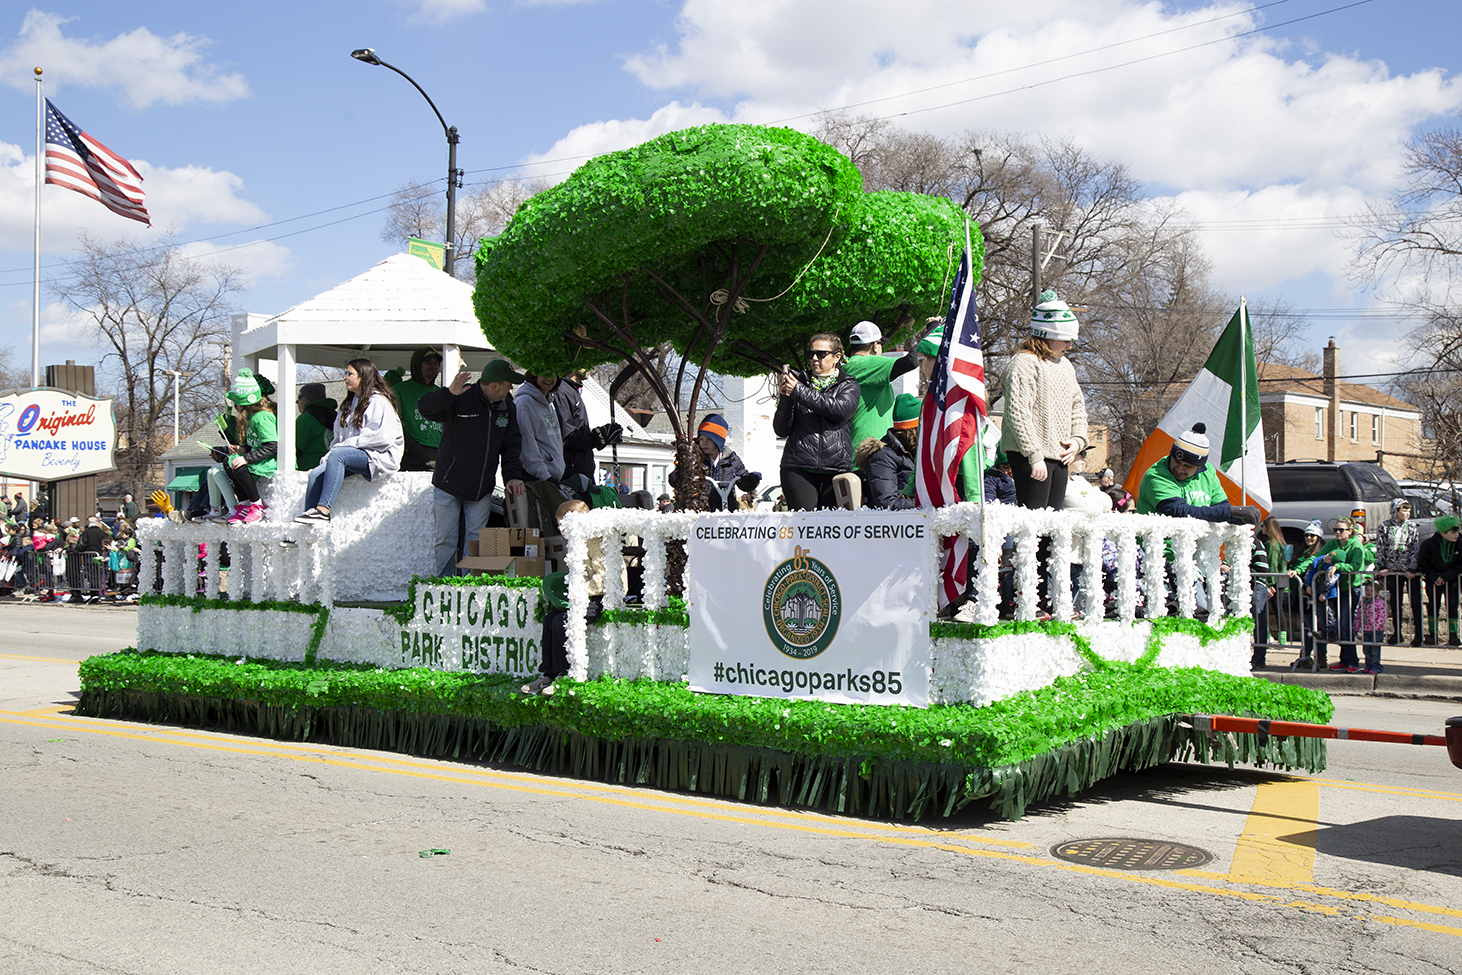 Chicago+Park+District+at+the+Southside+Irish+St.+Patrick%27s+Day+Parade+Mar.+18.